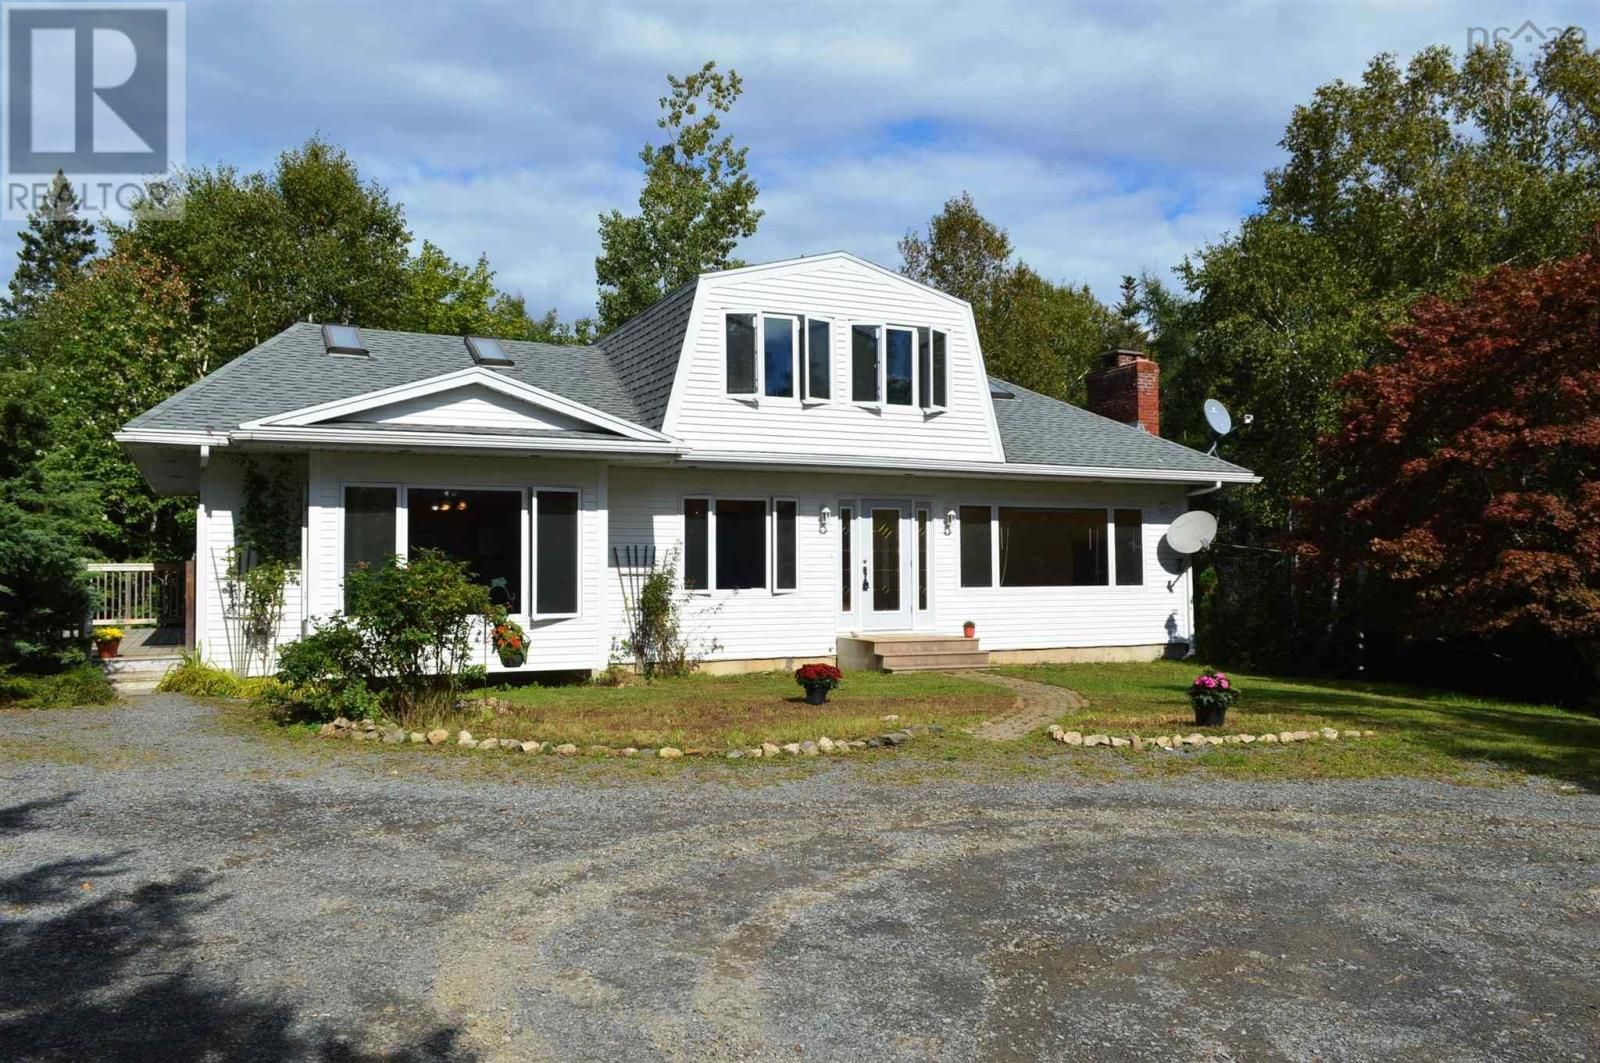 Main Photo: 782 Heckmans Island Road in Heckman's Island: House for sale : MLS®# 202121081